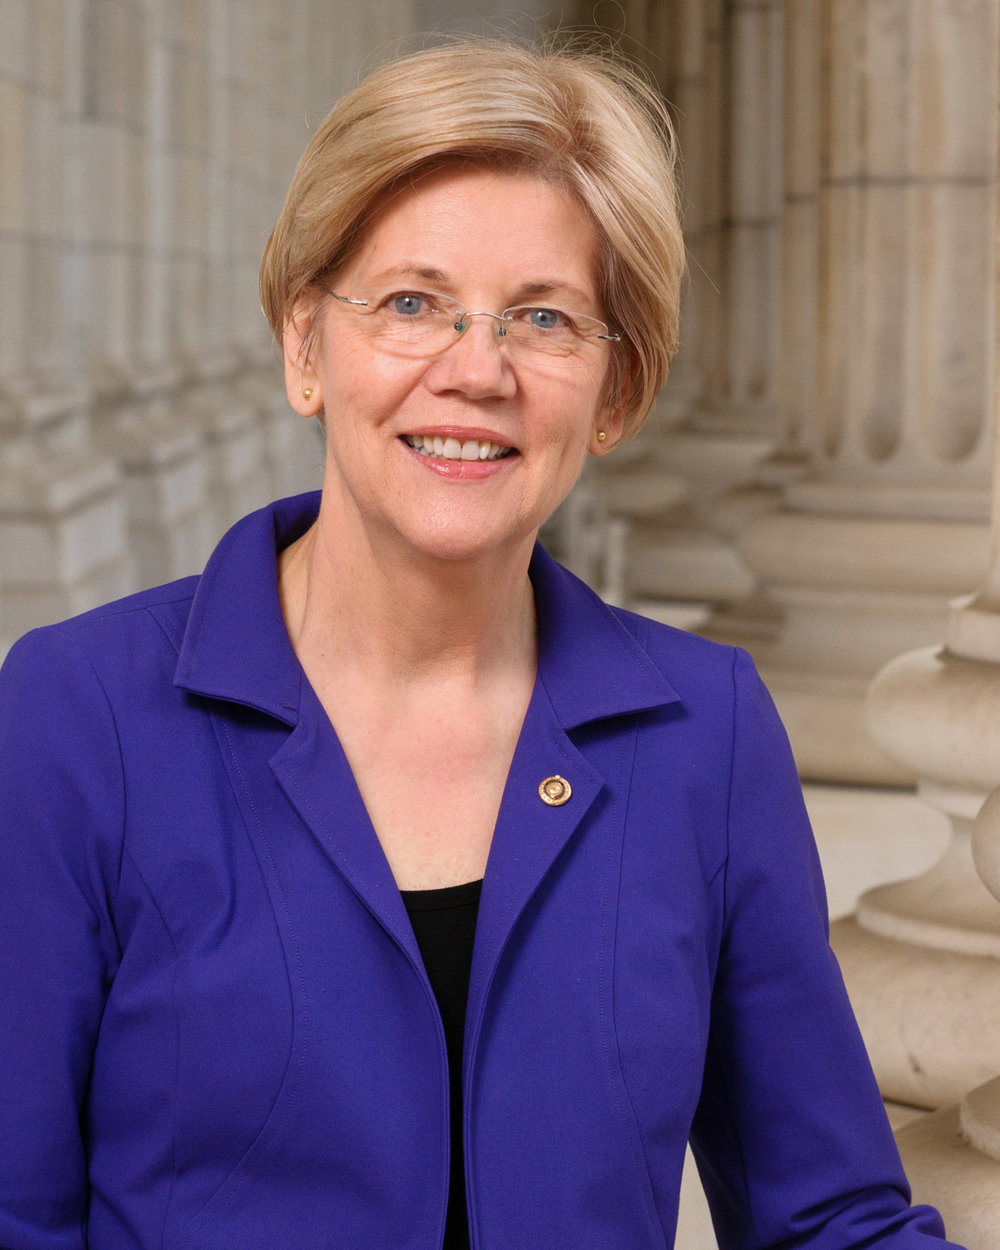 U.S. Senator Elizabeth Warren - Boston Office2400 JFK Federal Building 15 New Sudbury Street Boston, MA 02203 Phone: (617) 565-3170 Contact By Email